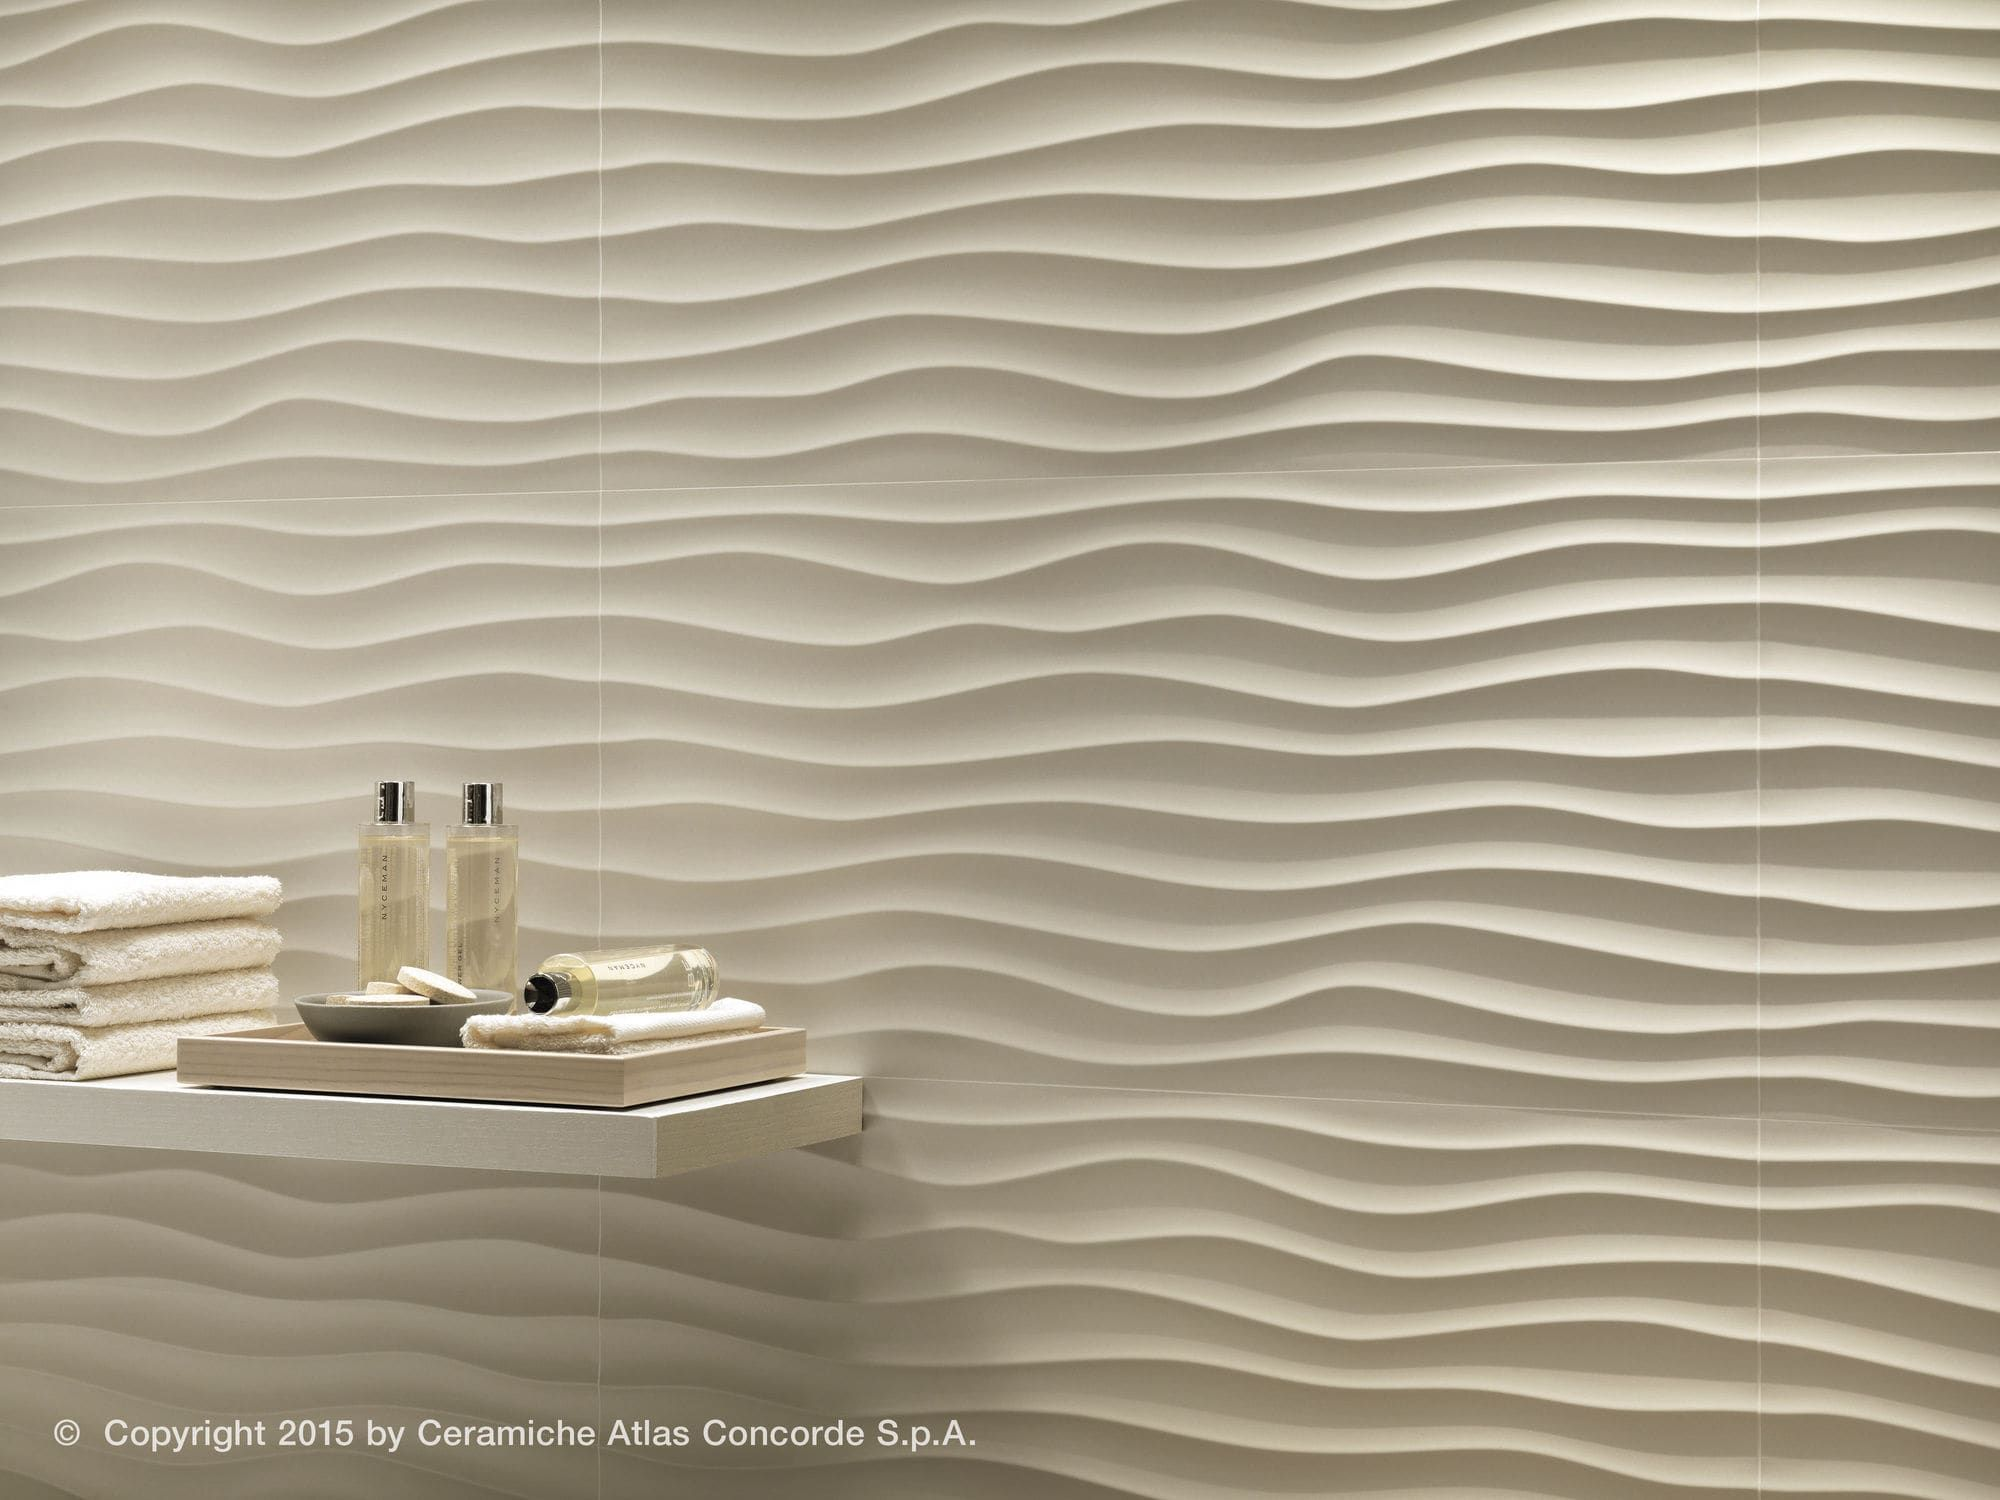 Indoor Tile Wall Ceramic 3d 3dwalldesign Diamond Atlas